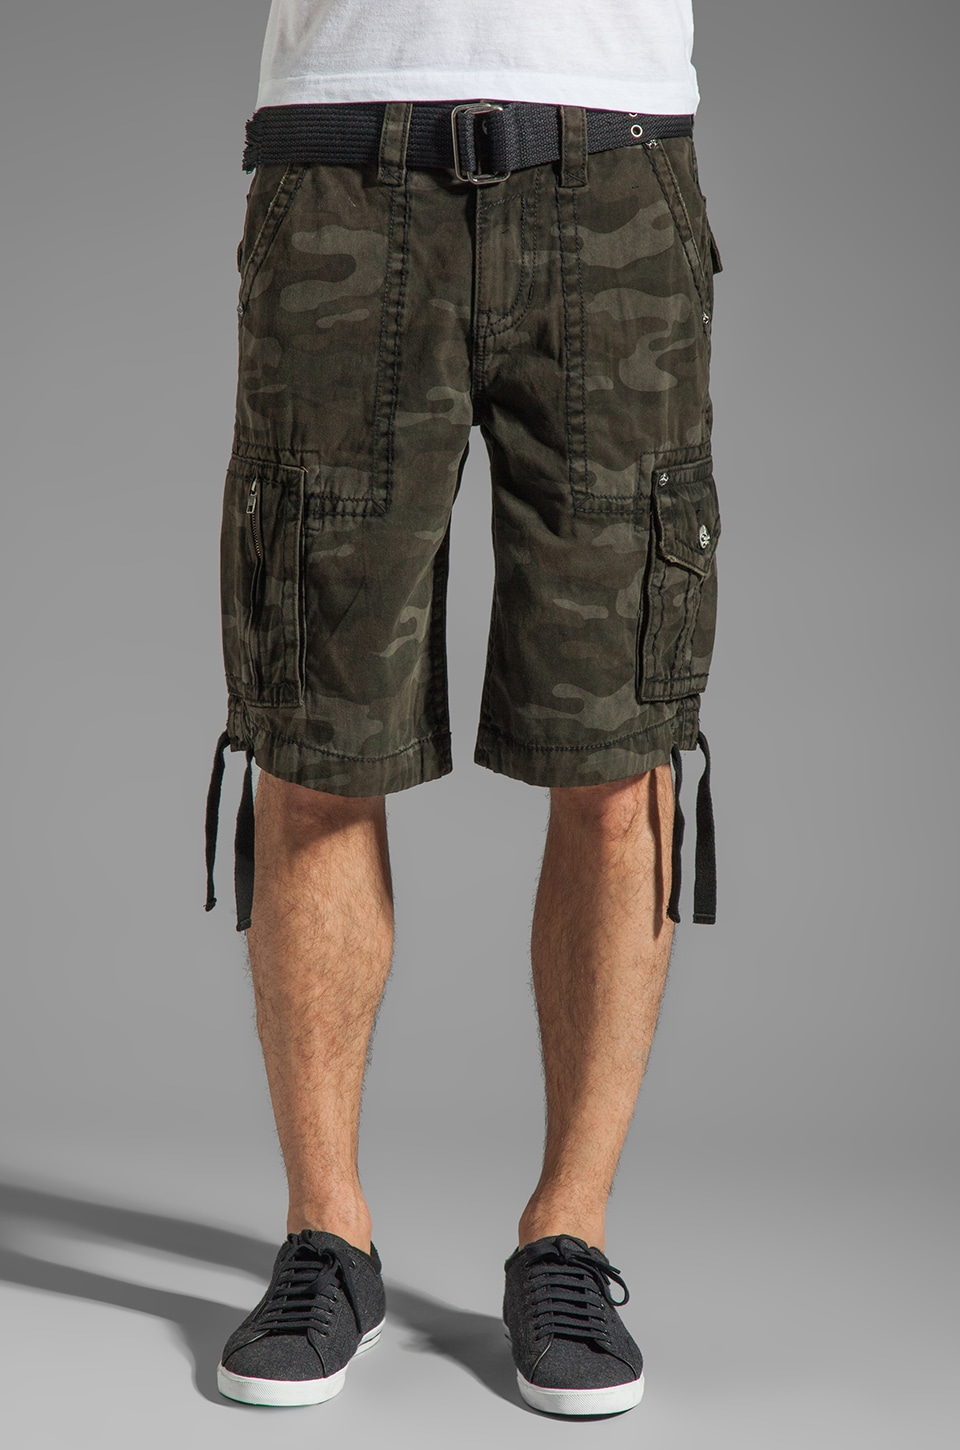 Rock Revival Cargo Short in Green Camo